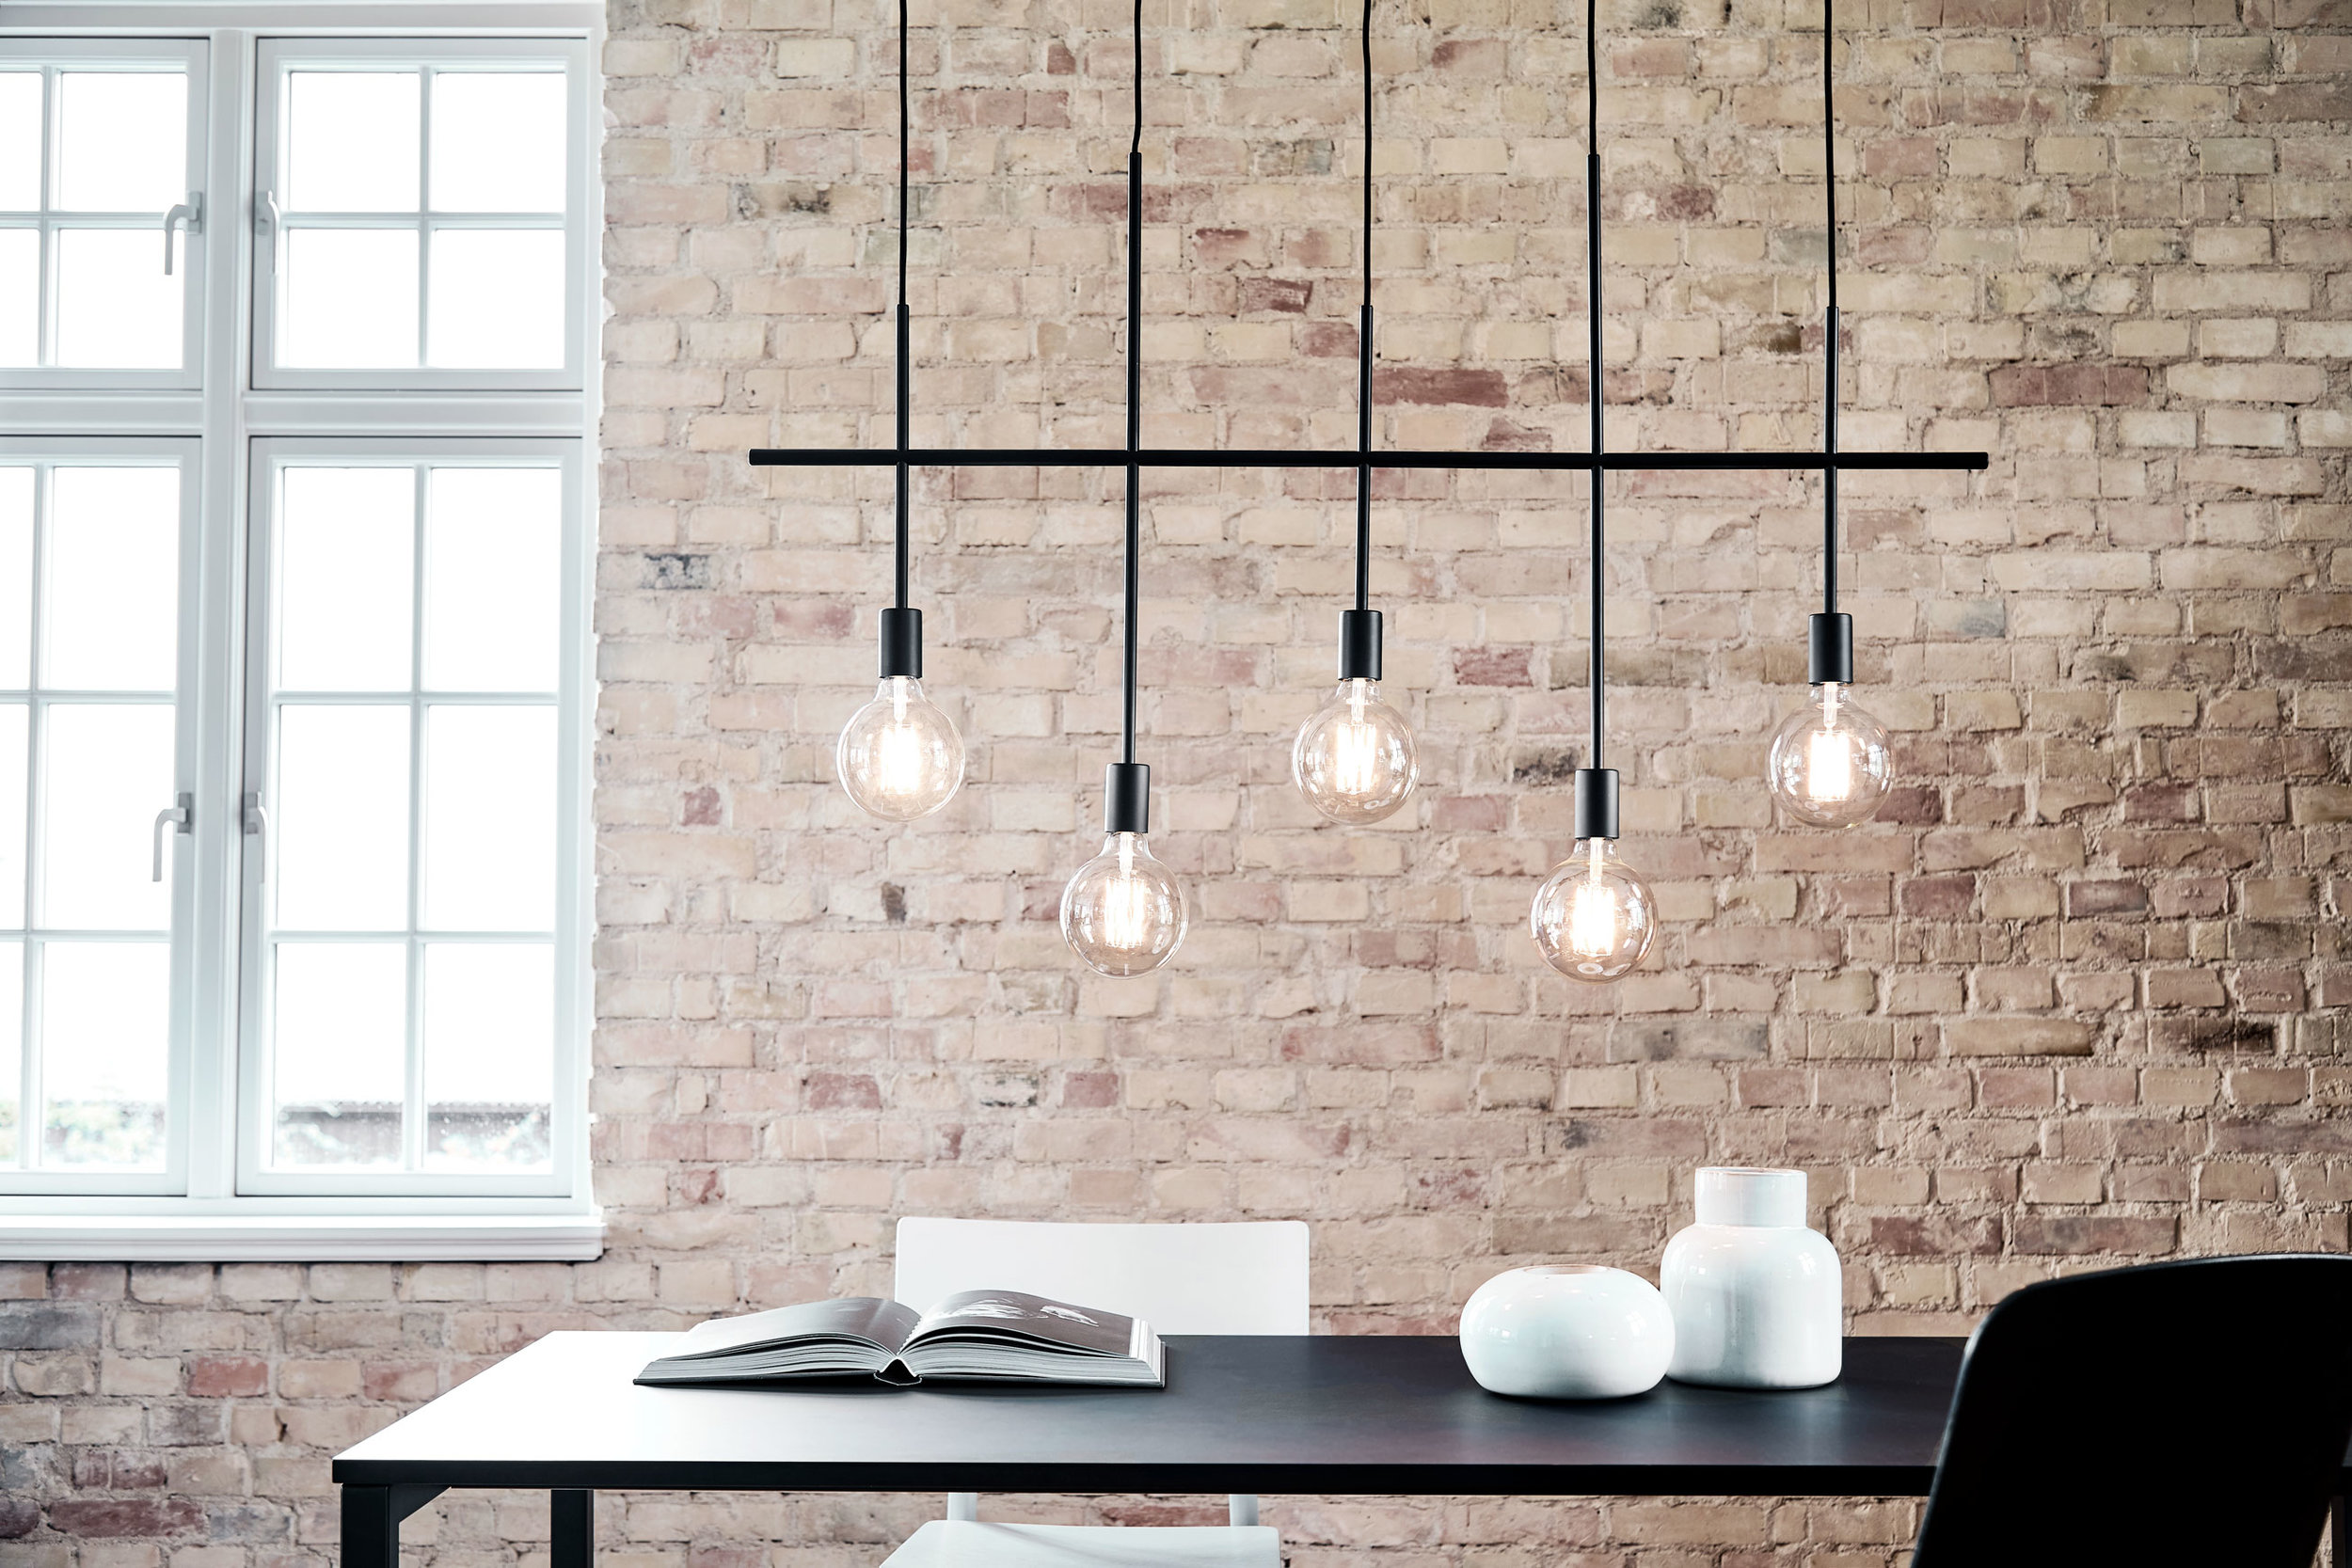 You may be a fan of industrial or minimalistic style, but there is no need to live without the striking feature of a chandelier above your evening meal or dinner parties. The Harper Chandelier unites modern style with nostalgic grandeur, and it is even available in two versions – for the large or small dining table.   READ